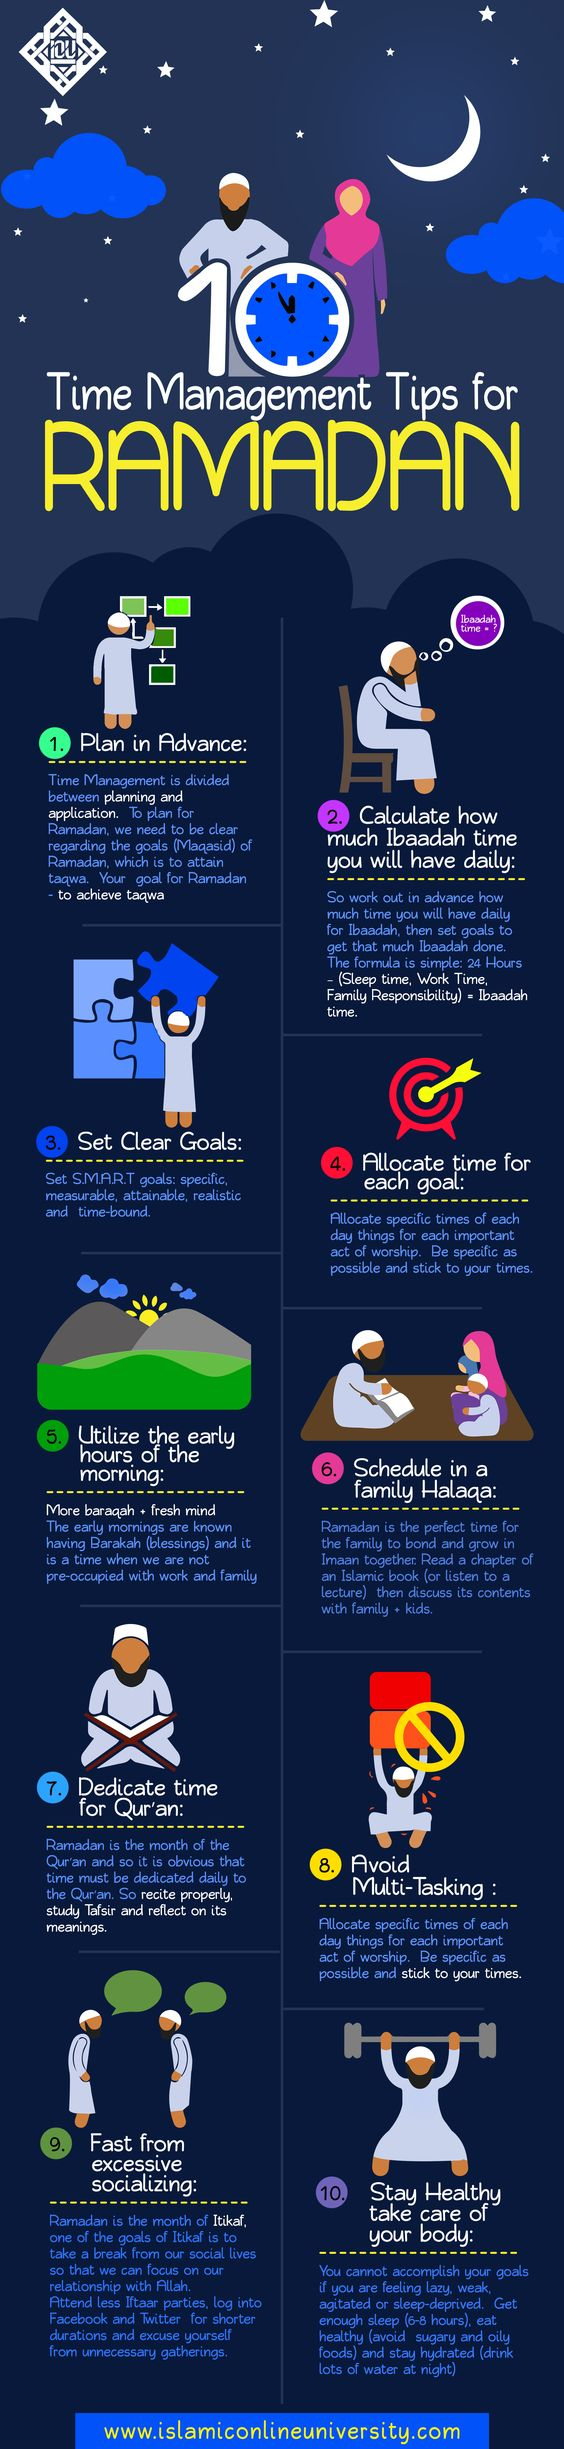 Time Management tips for #Ramadan